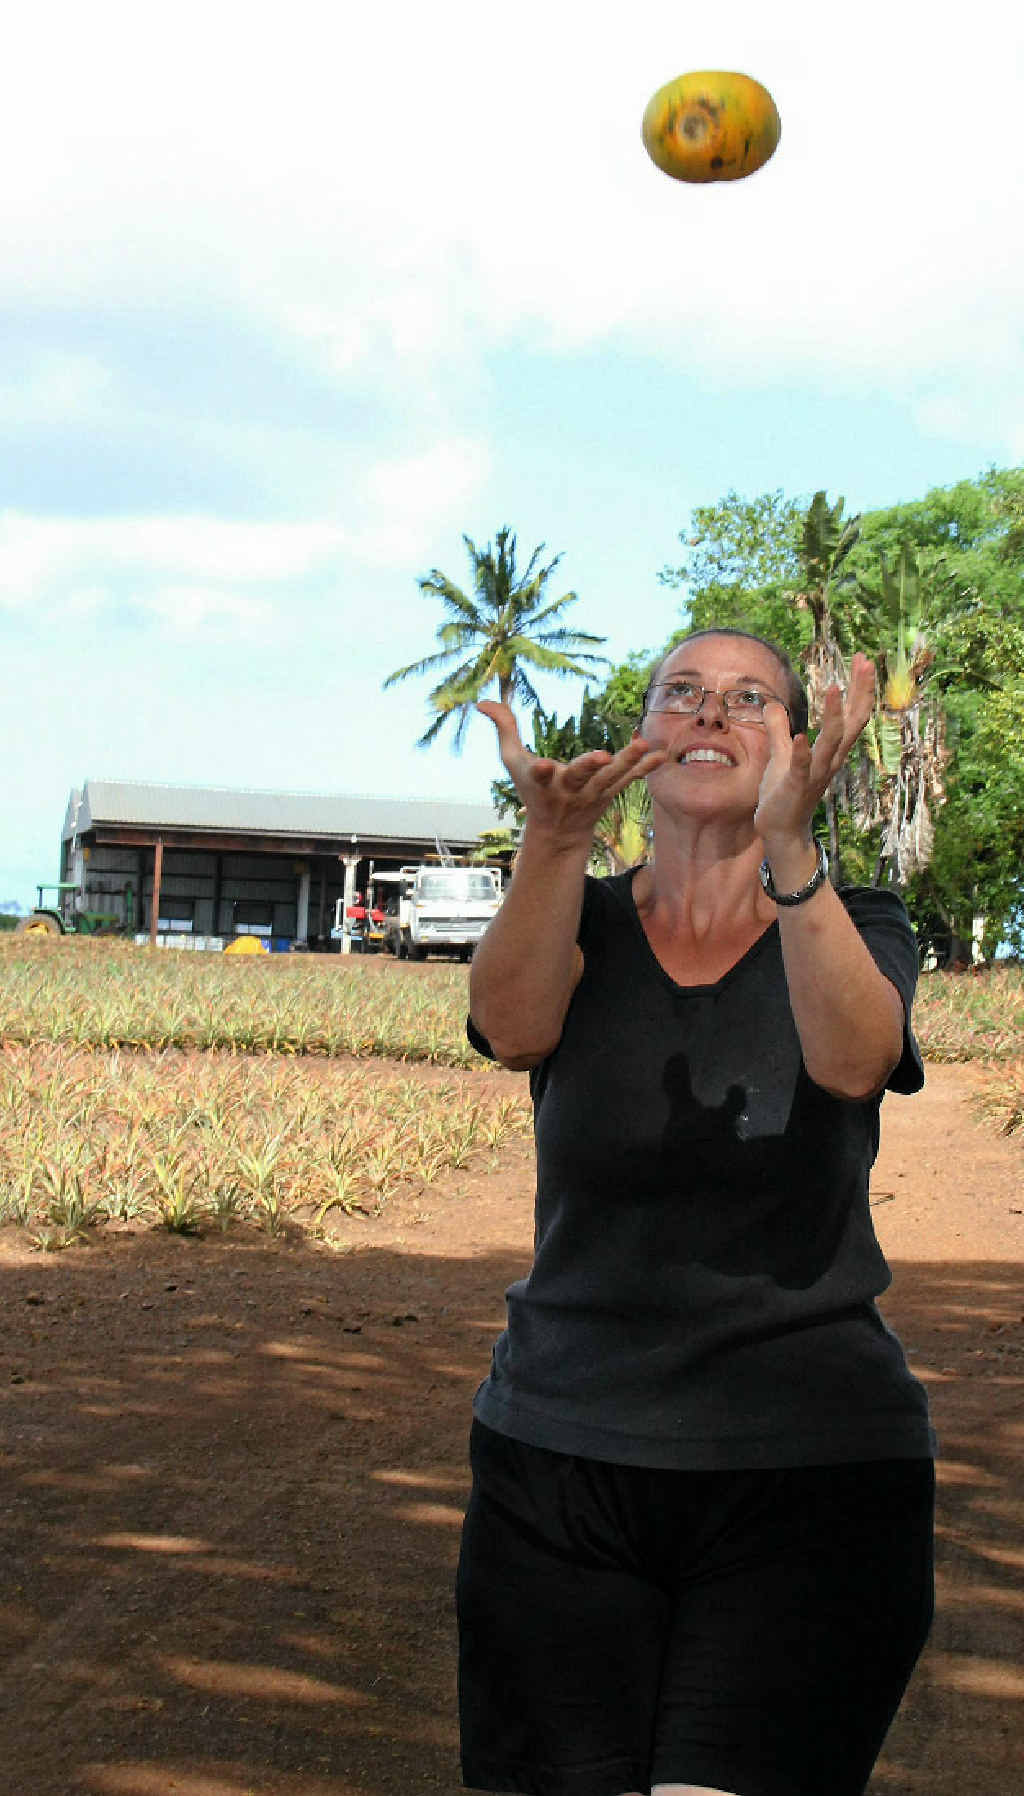 Genny Mazzoni has been working on a papaw farm at Hay Point and strawberry farms in Mackay for the past year. AgriTourism in the region is facilitated through the Mackay Language College.